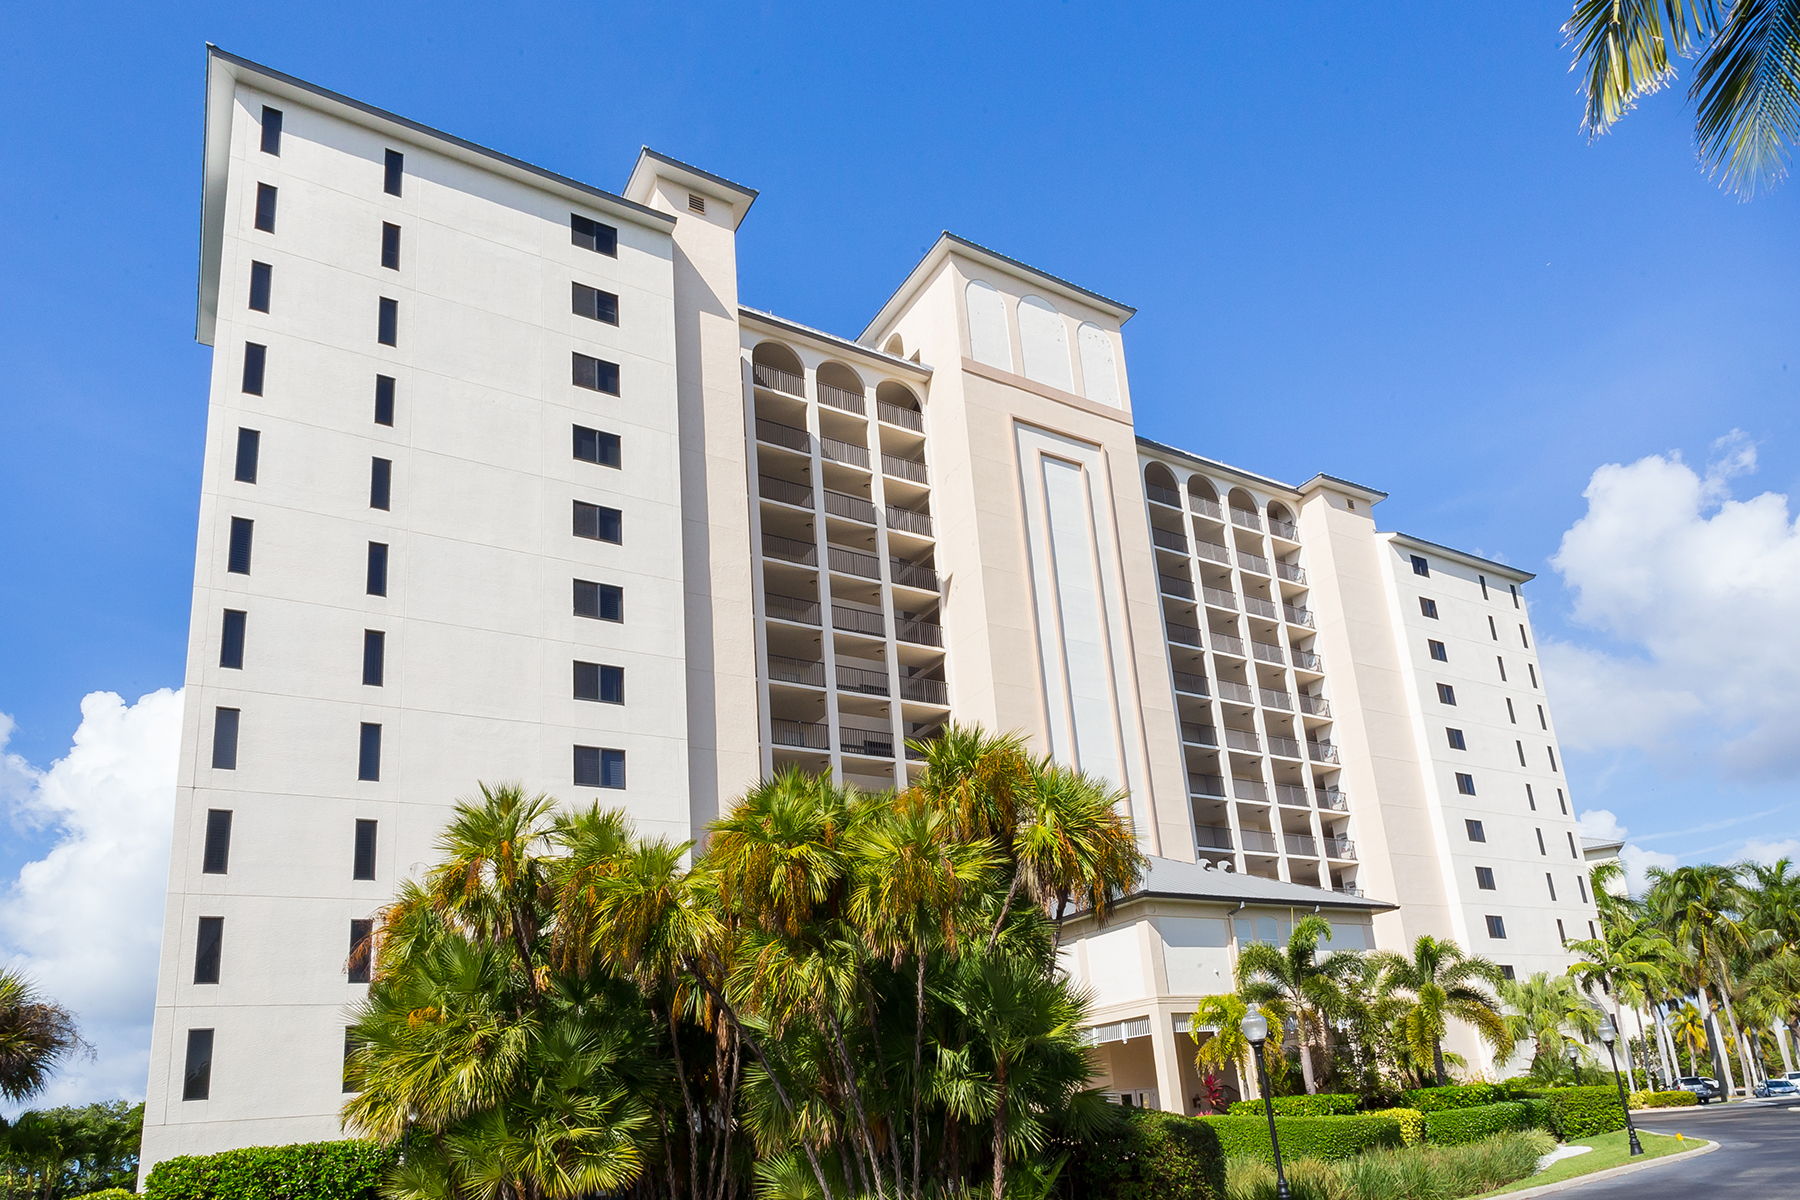 Condominium for Sale at FORT MYERS 17170 Harbour Point Dr 435 Fort Myers, Florida, 33908 United States